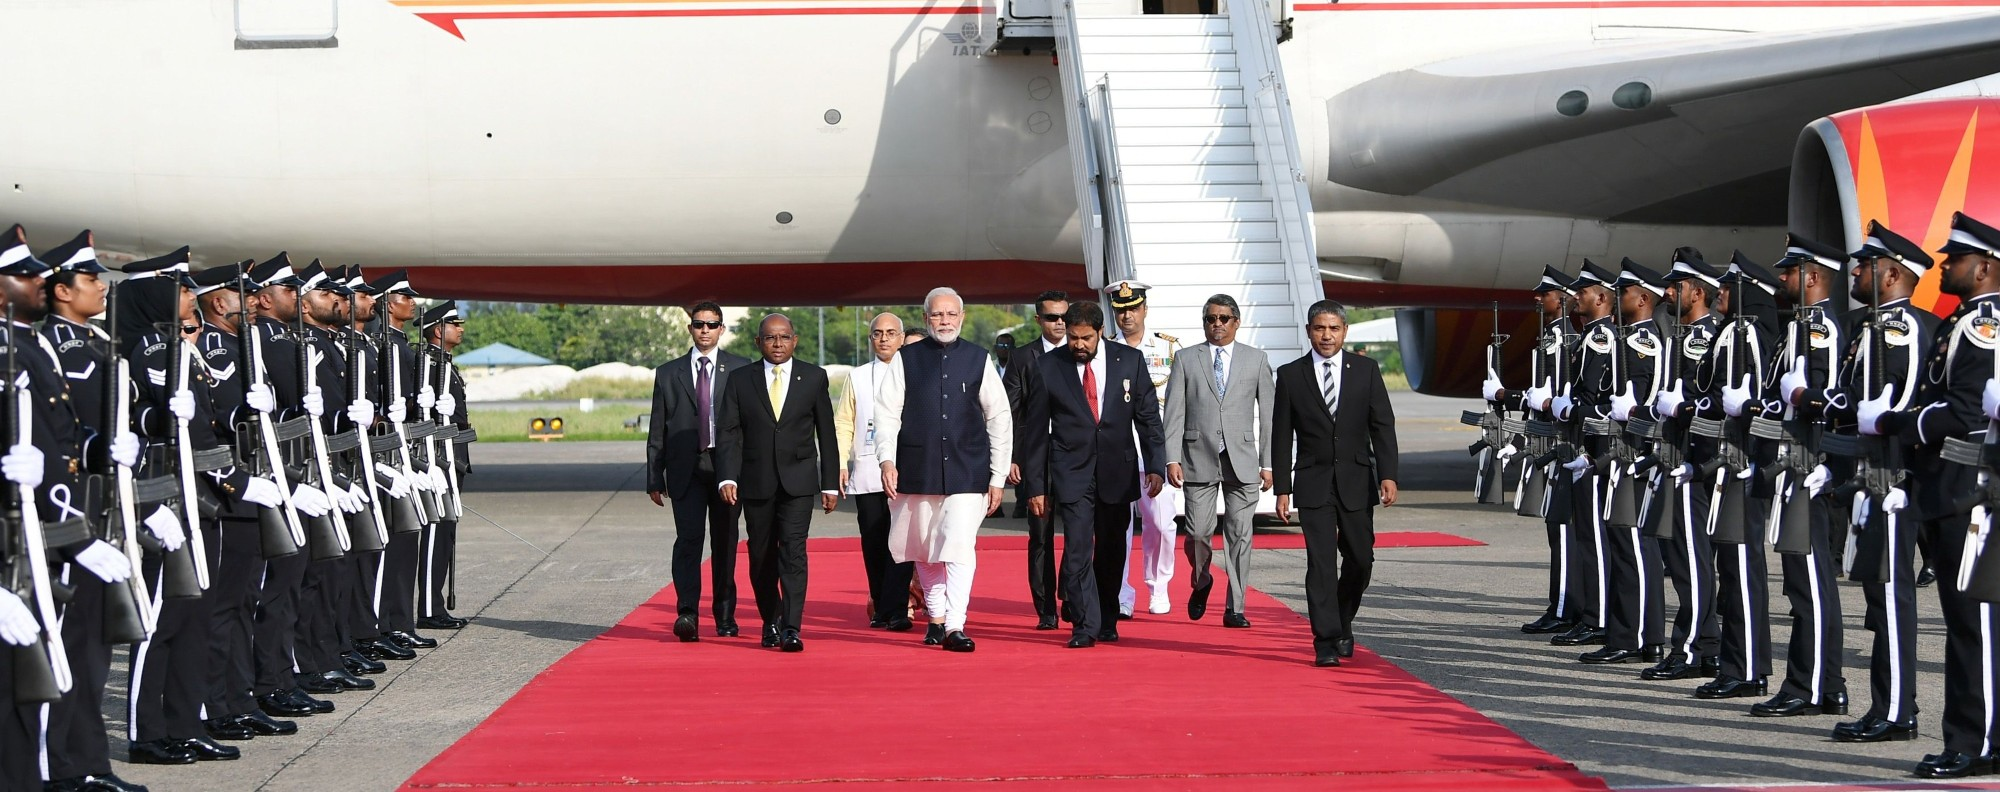 Modi arrives in the Maldives. Photo: AFP